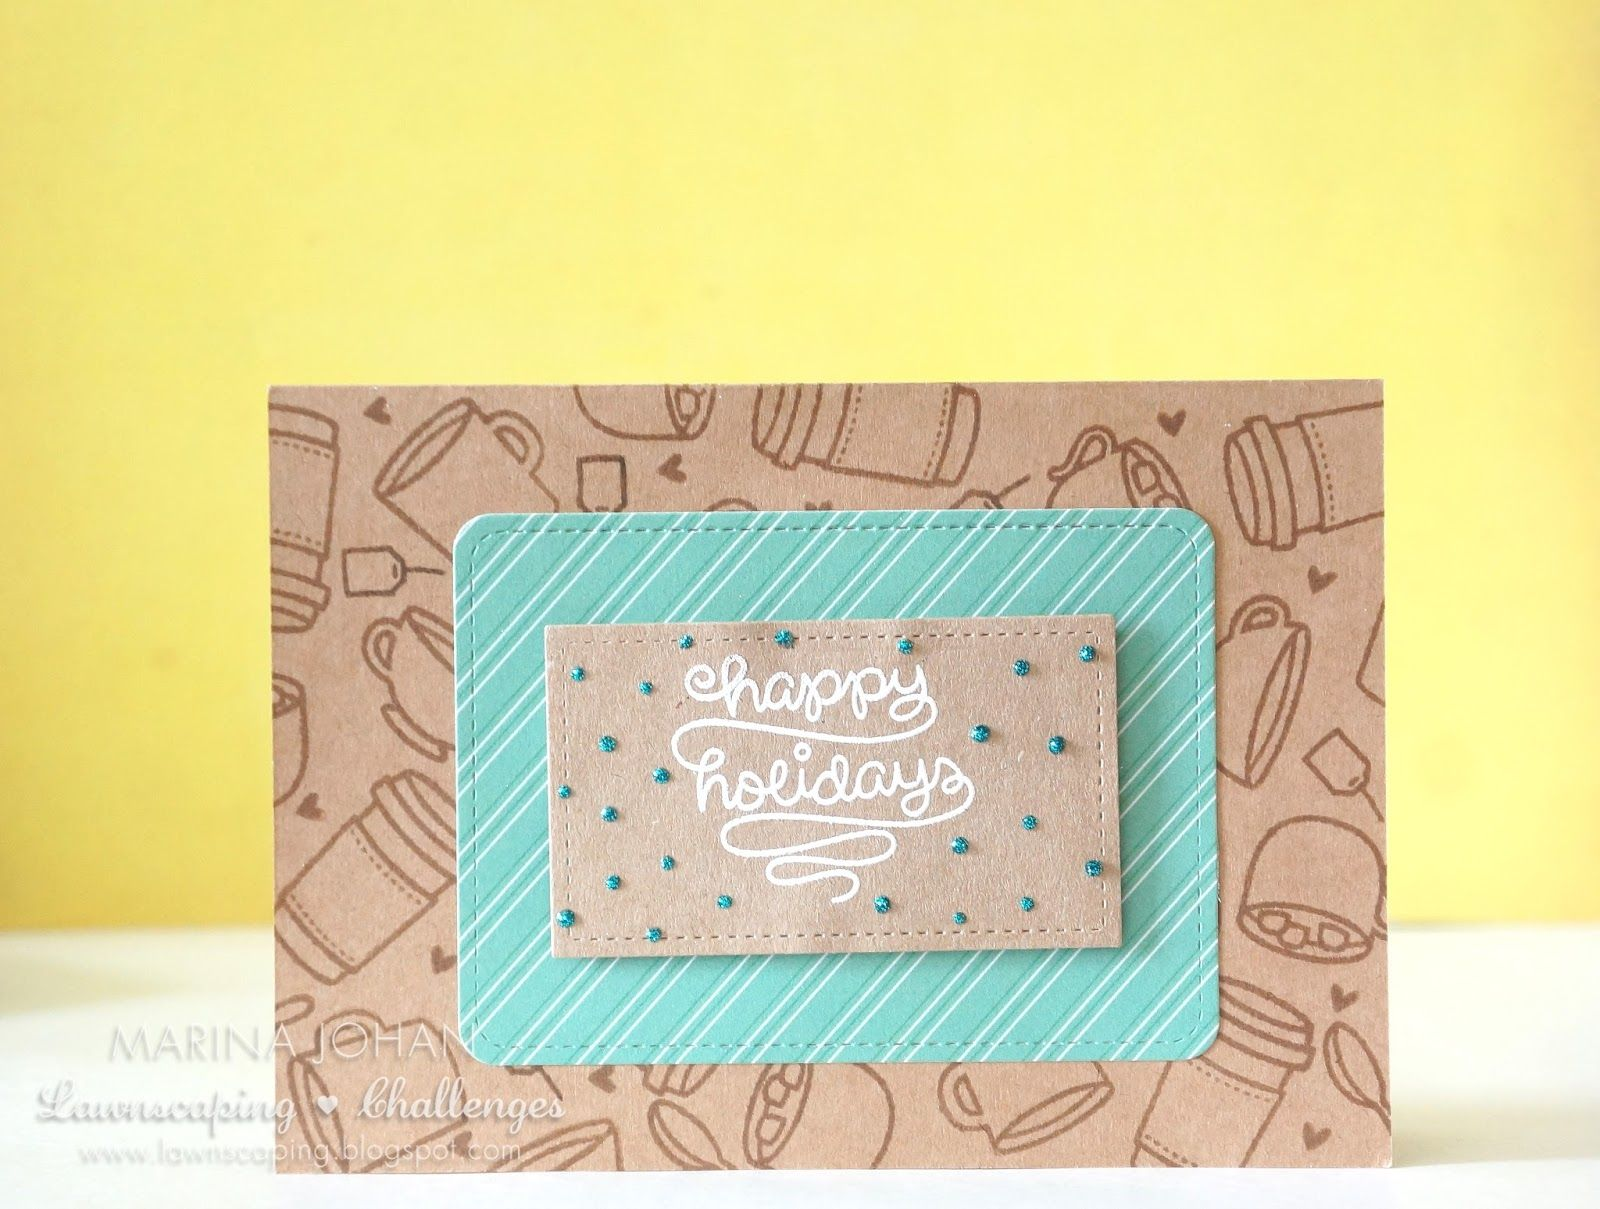 #lawnscaping Lawnscaping Challenge: Creating Your Own Patterned Paper  @lawnfawn